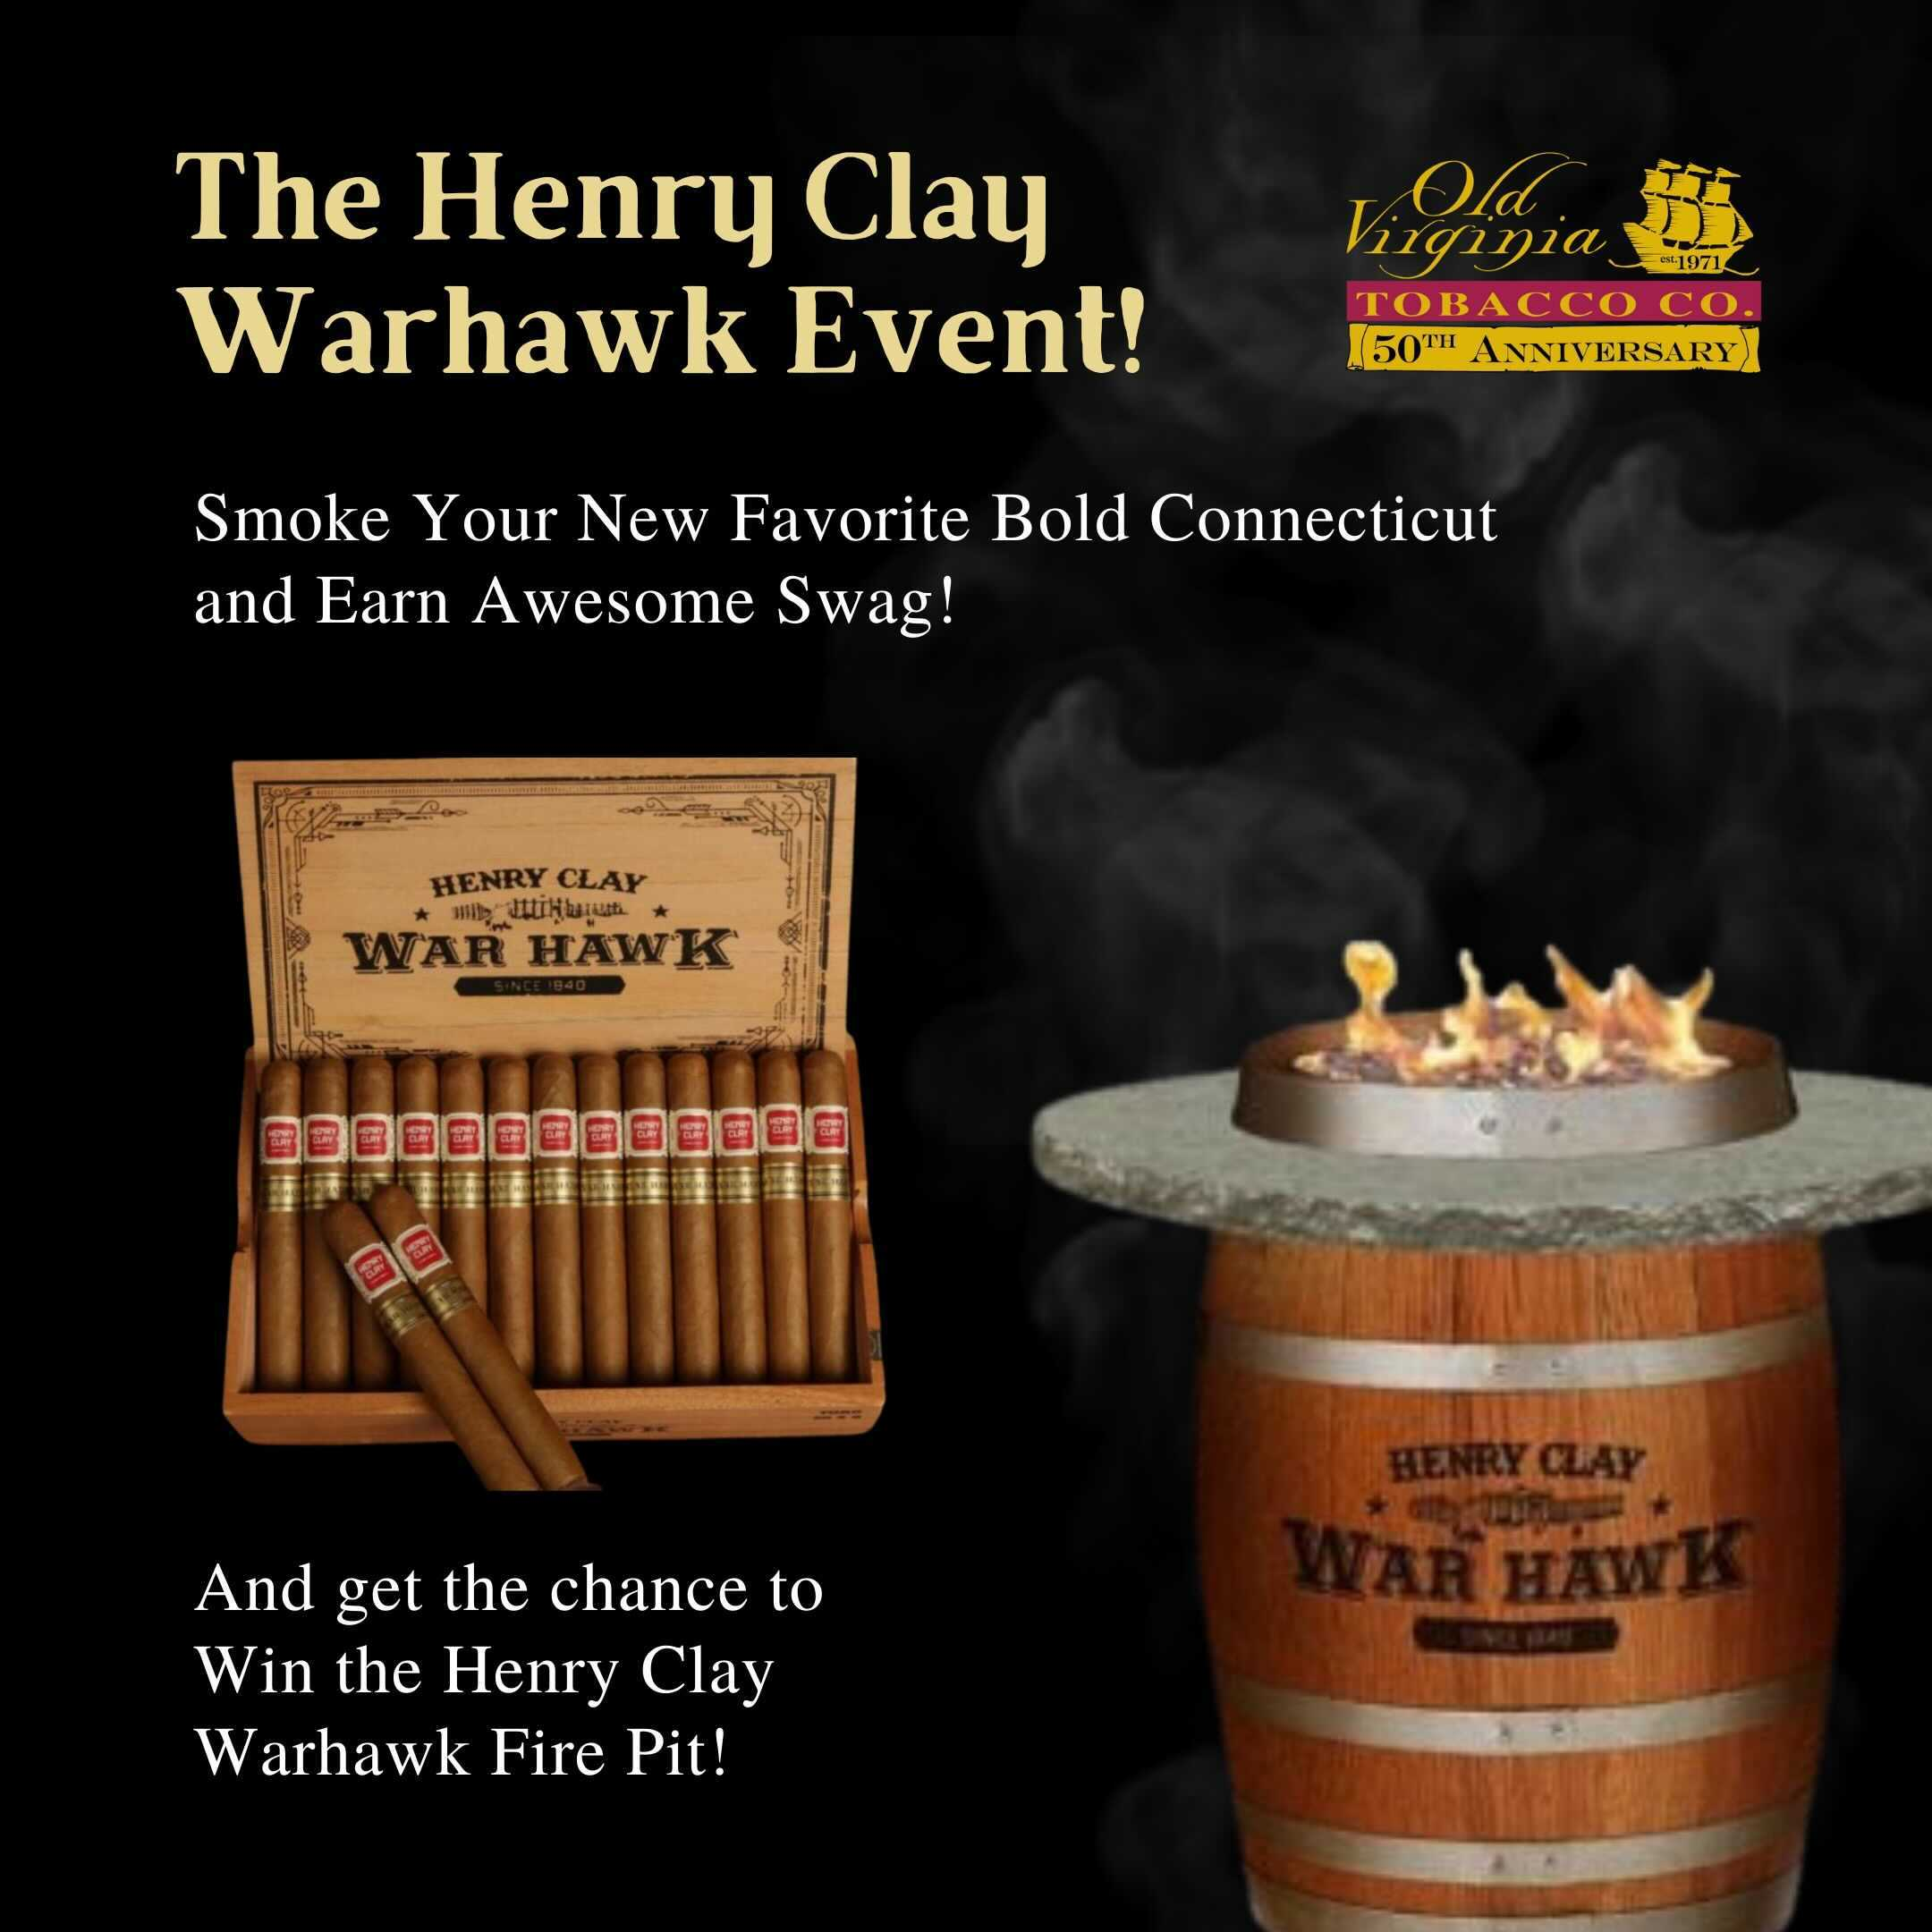 The Henry Clay Warhawk Event!